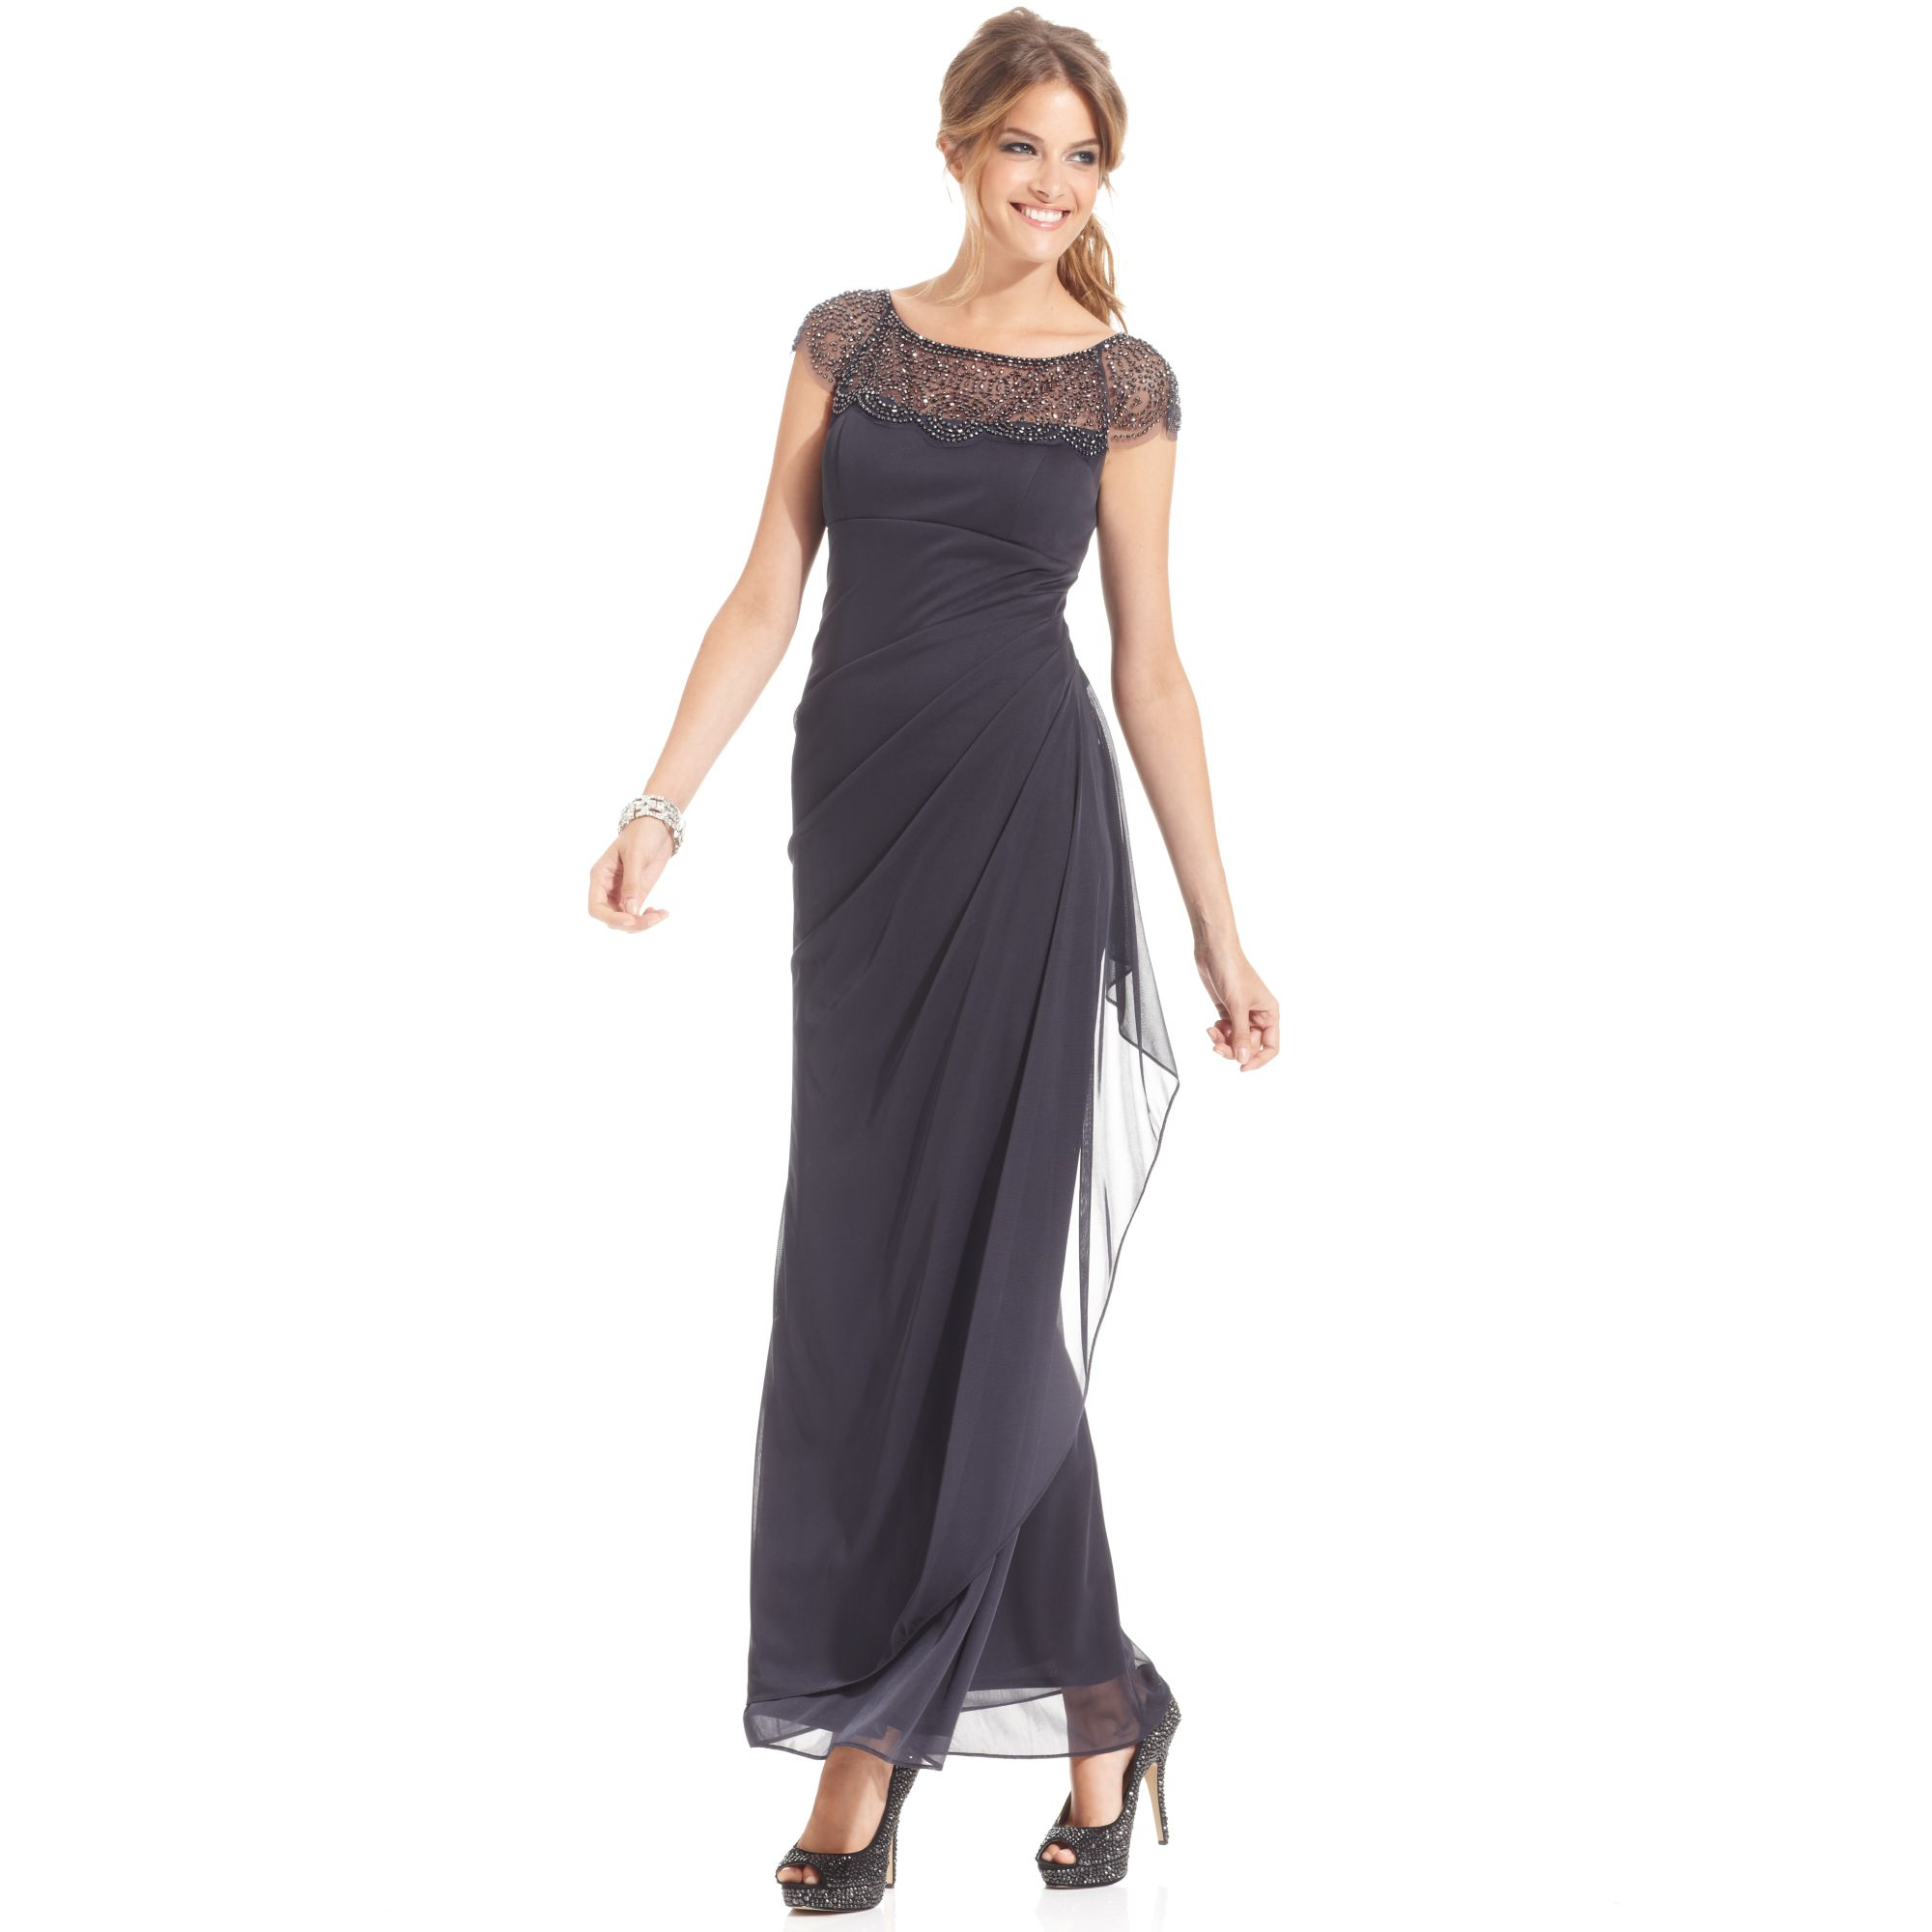 78bb0fc62 Xscape Petite Dress Capsleeve Beaded Gown in Gray - Lyst